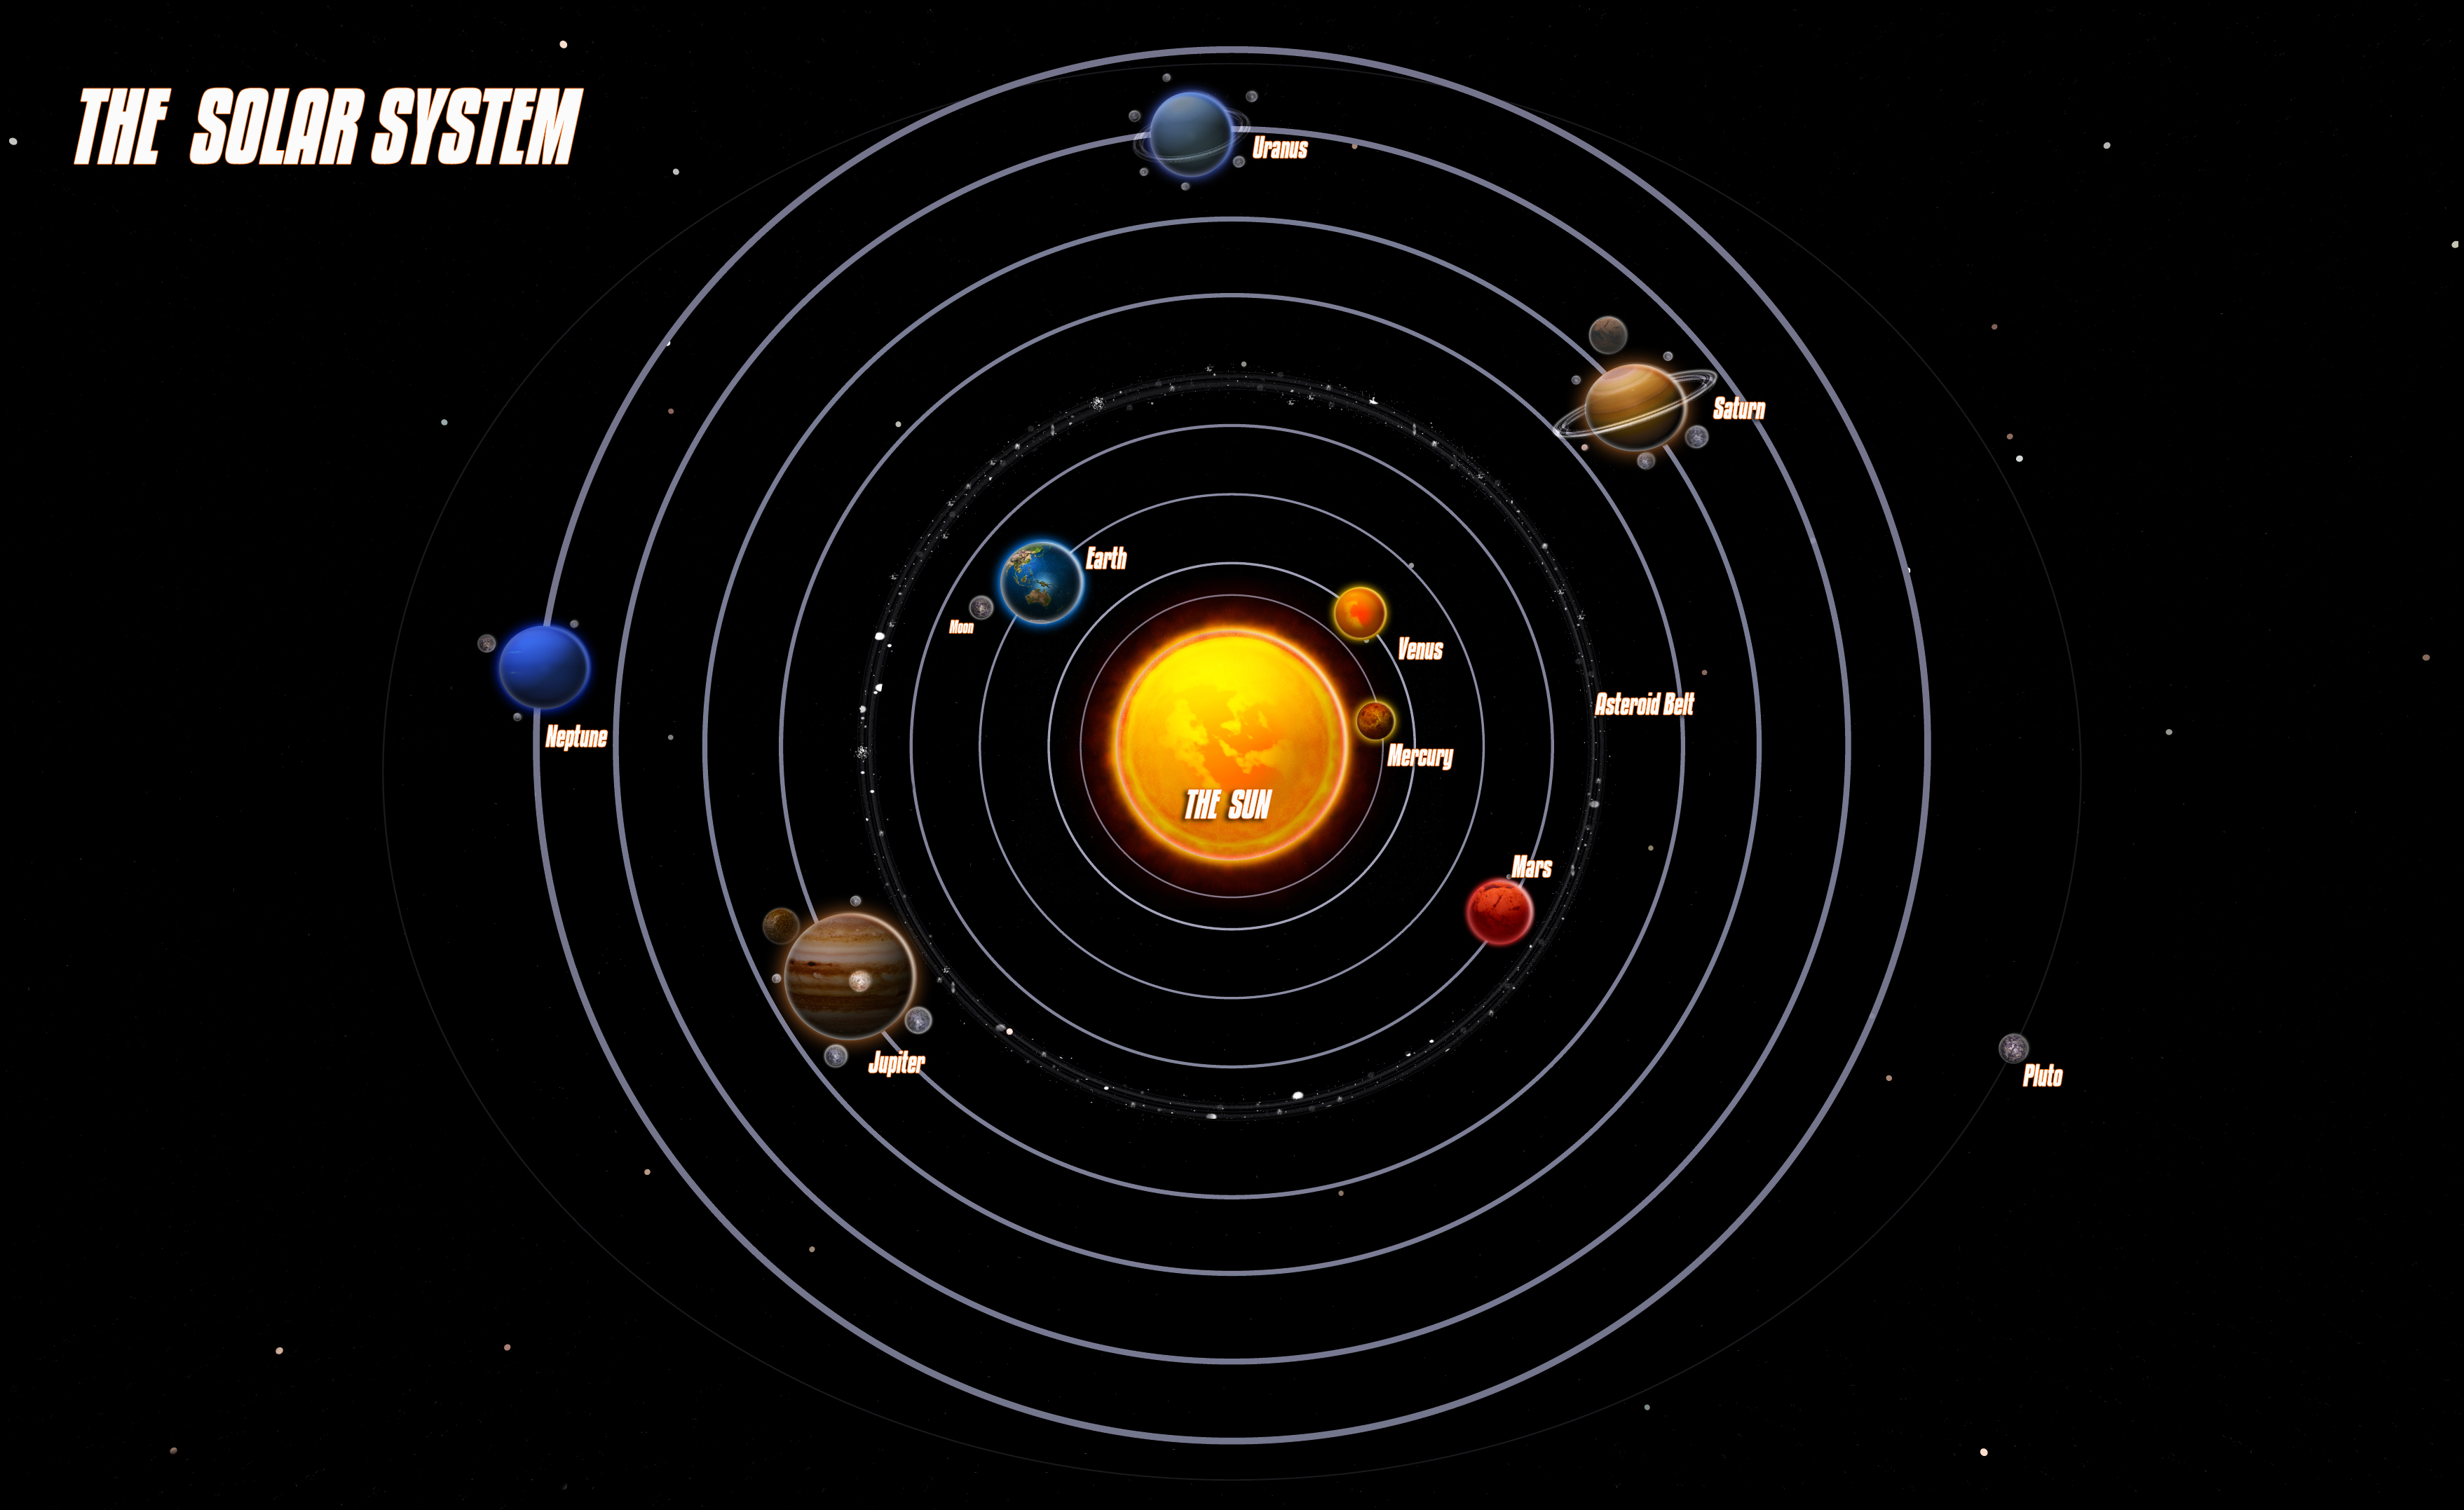 where are we in the solar system-#9